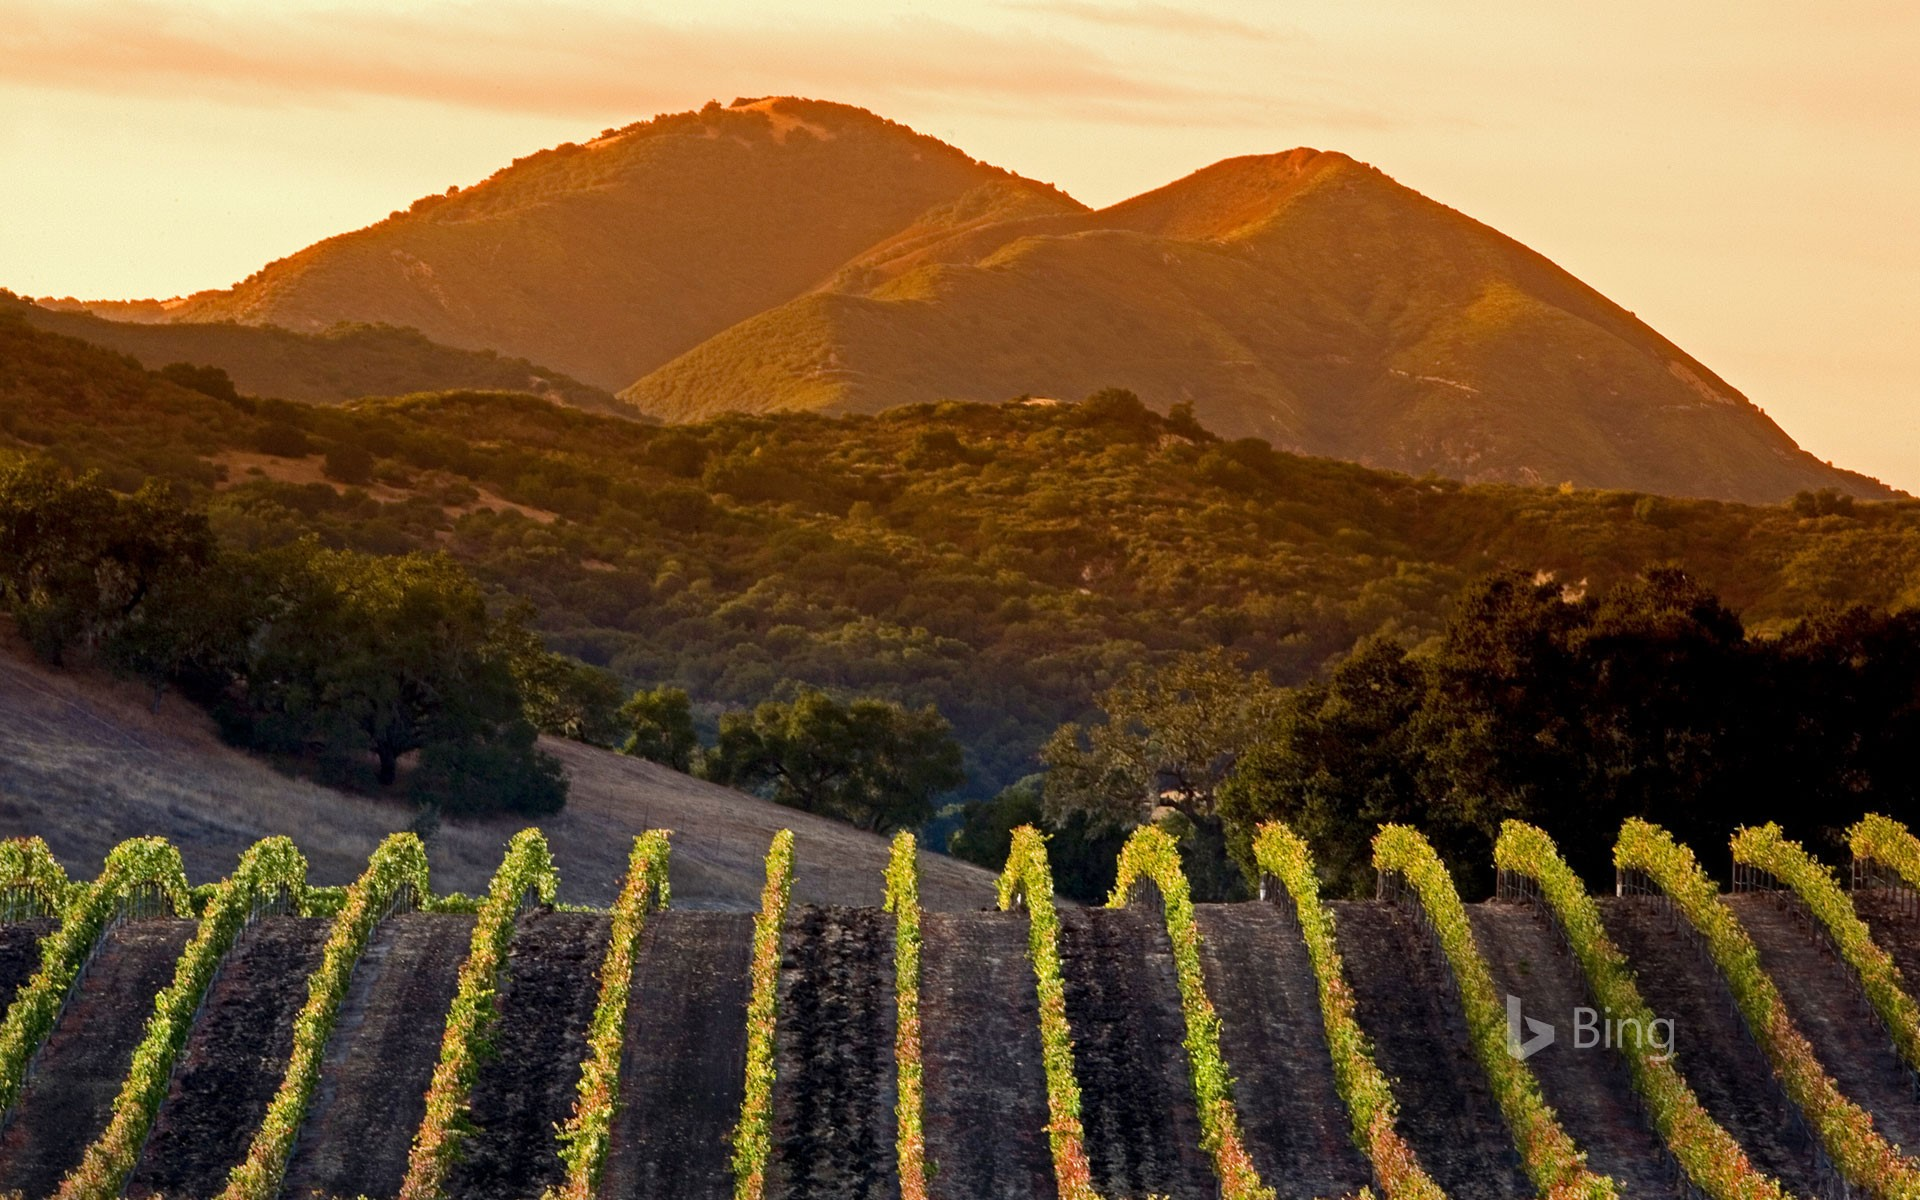 Central Coast vineyards in Arroyo Grande, California (© Ian Shive/Tandem Motion + Stills)